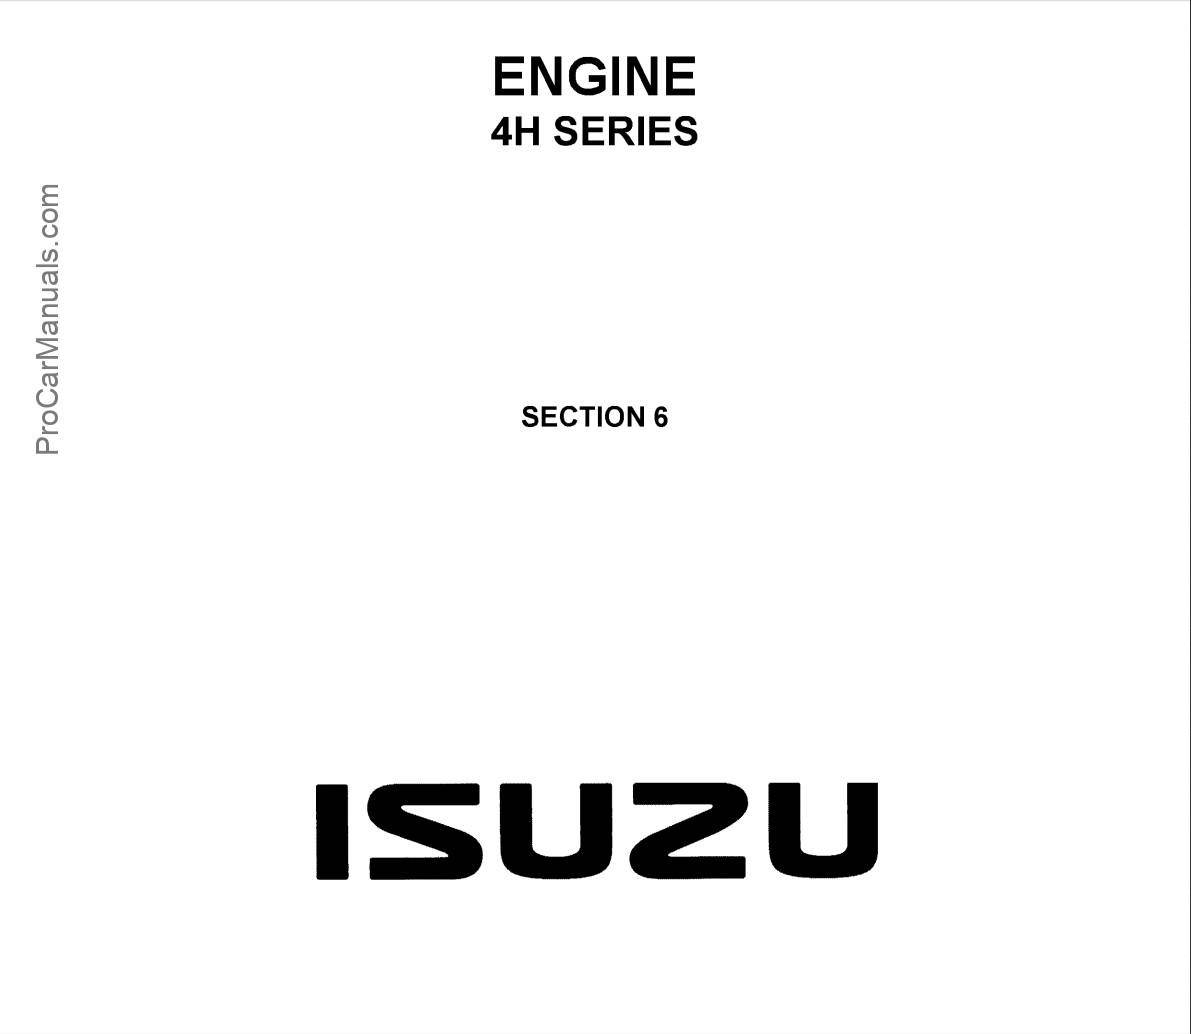 Isuzu Engine 4H Series Workshop Manual (LG4H-WE-9691